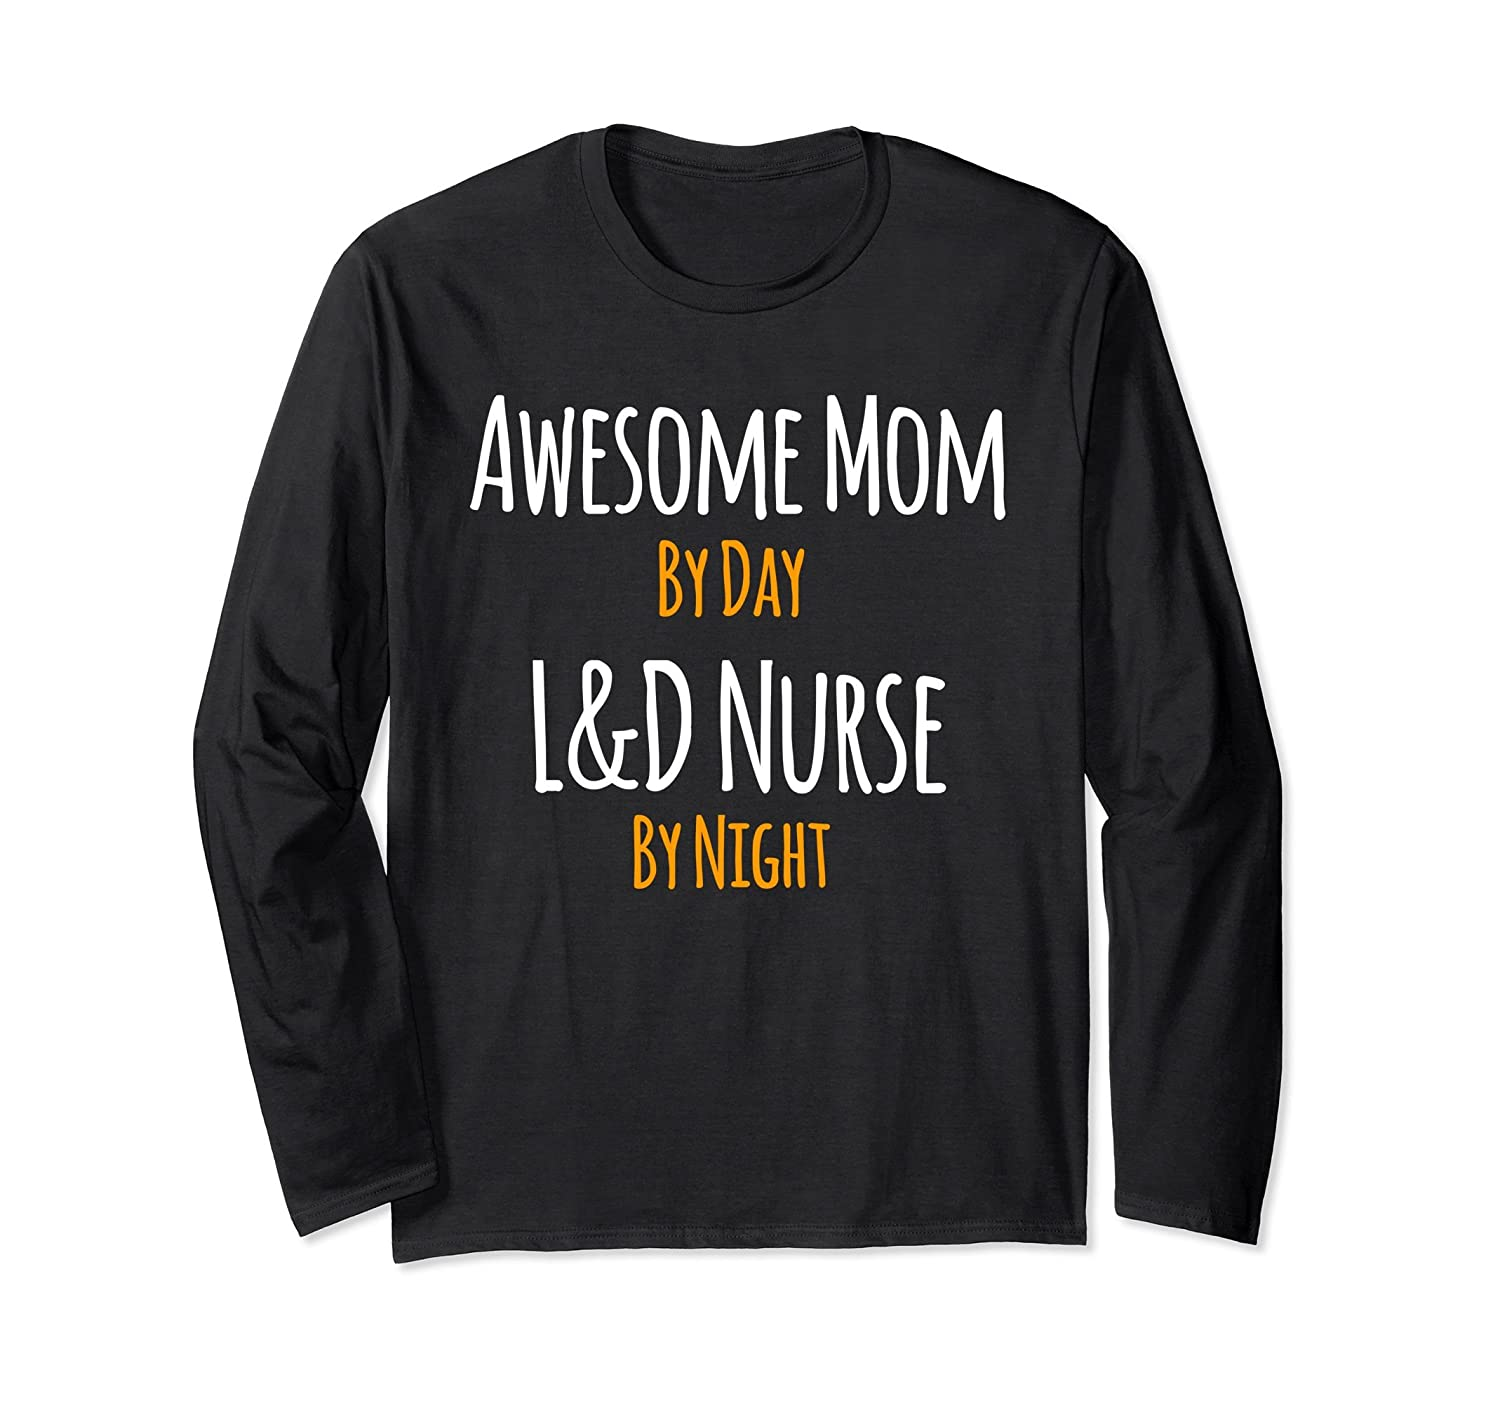 Awesome Mom by Day L&D Nurse by Night Long Sleeve T-Shirt-anz